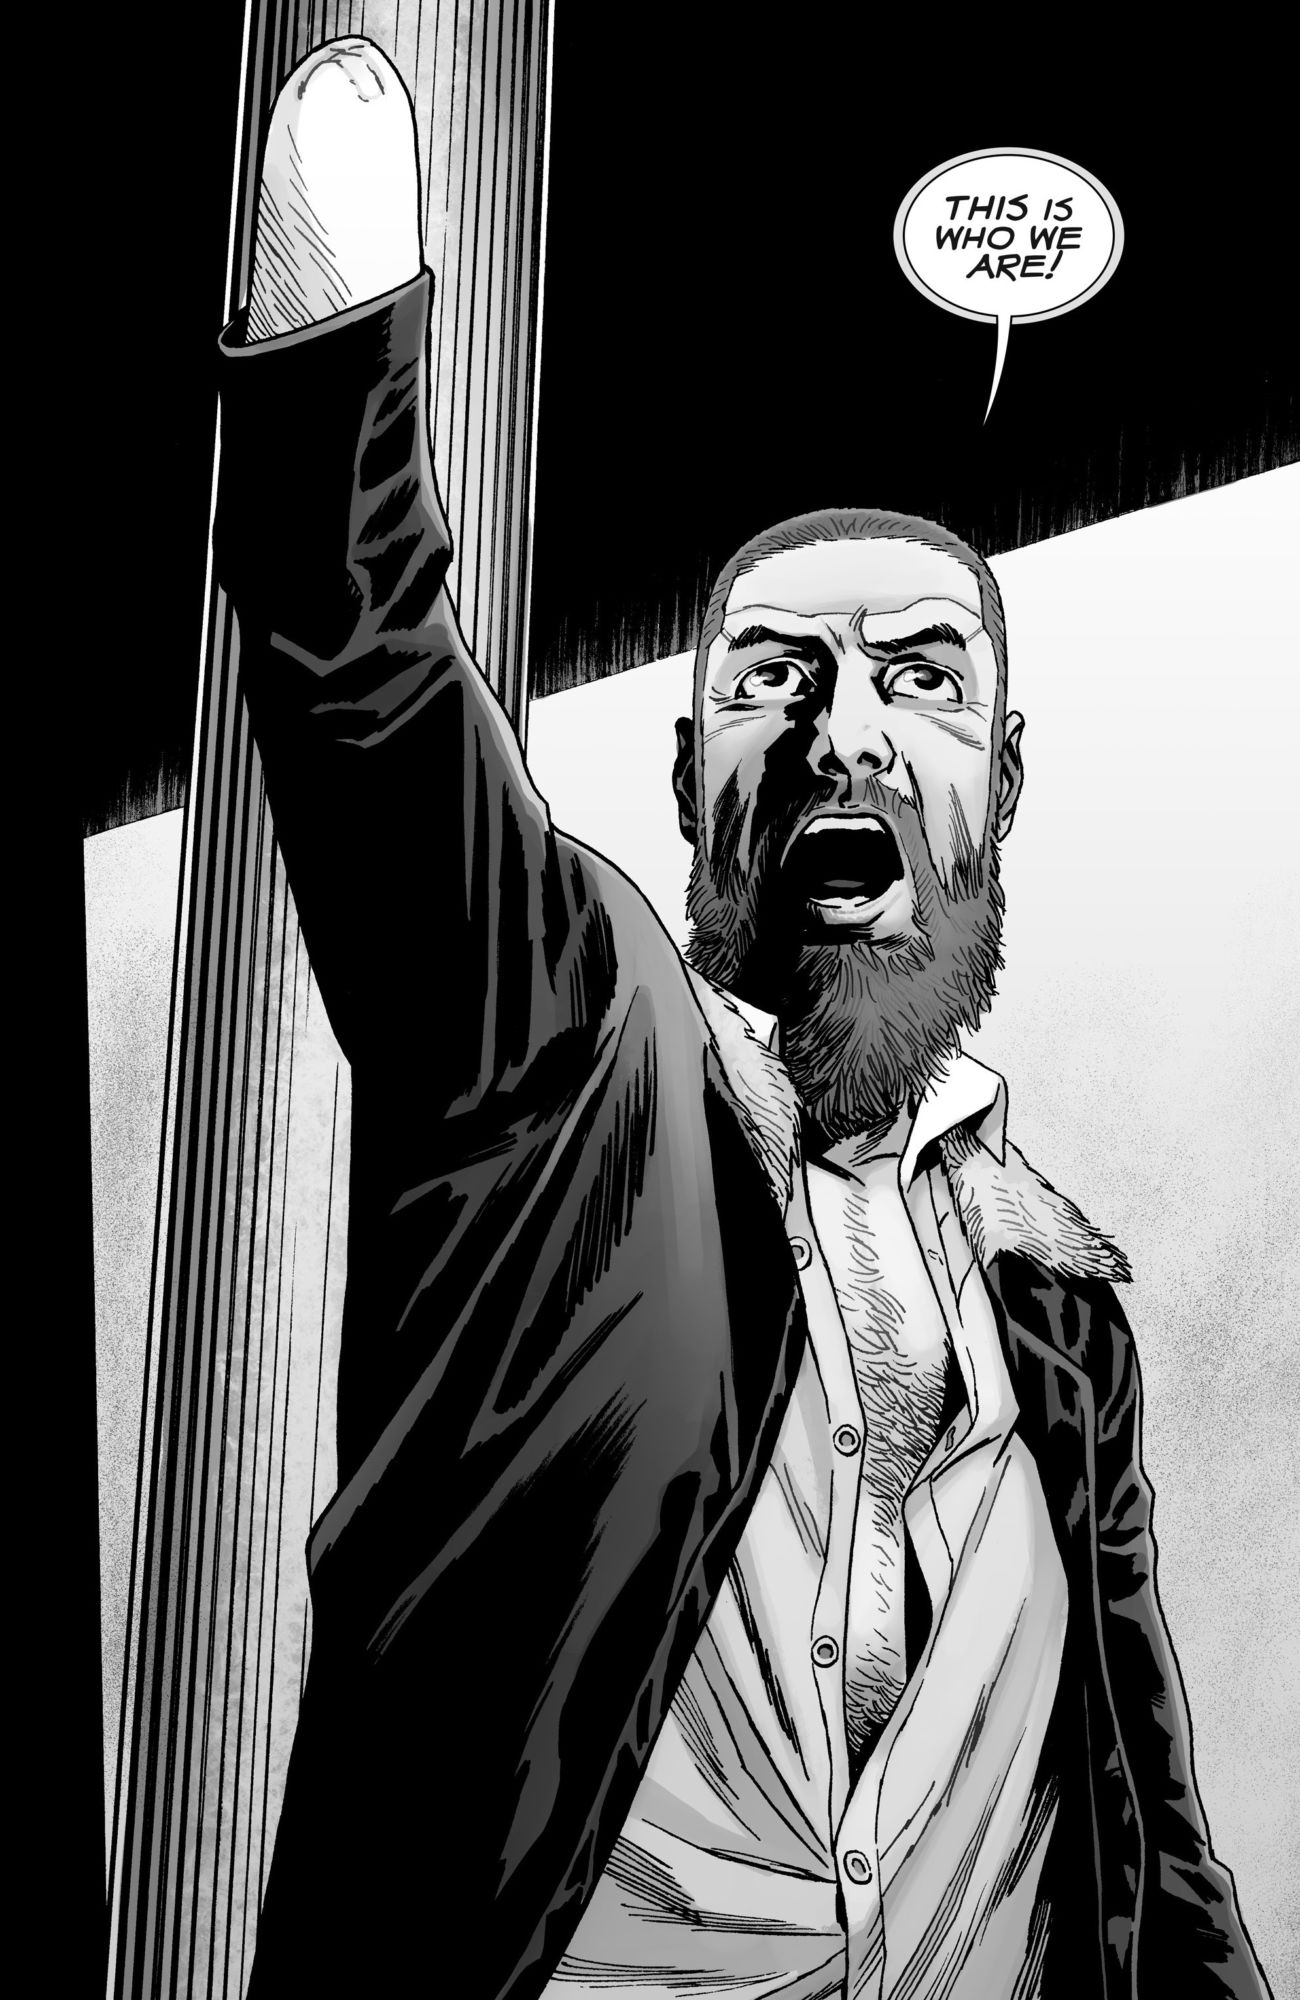 In The Walking Dead #193, Michonne Reads Off The Back Of The Collections (Spoilers)